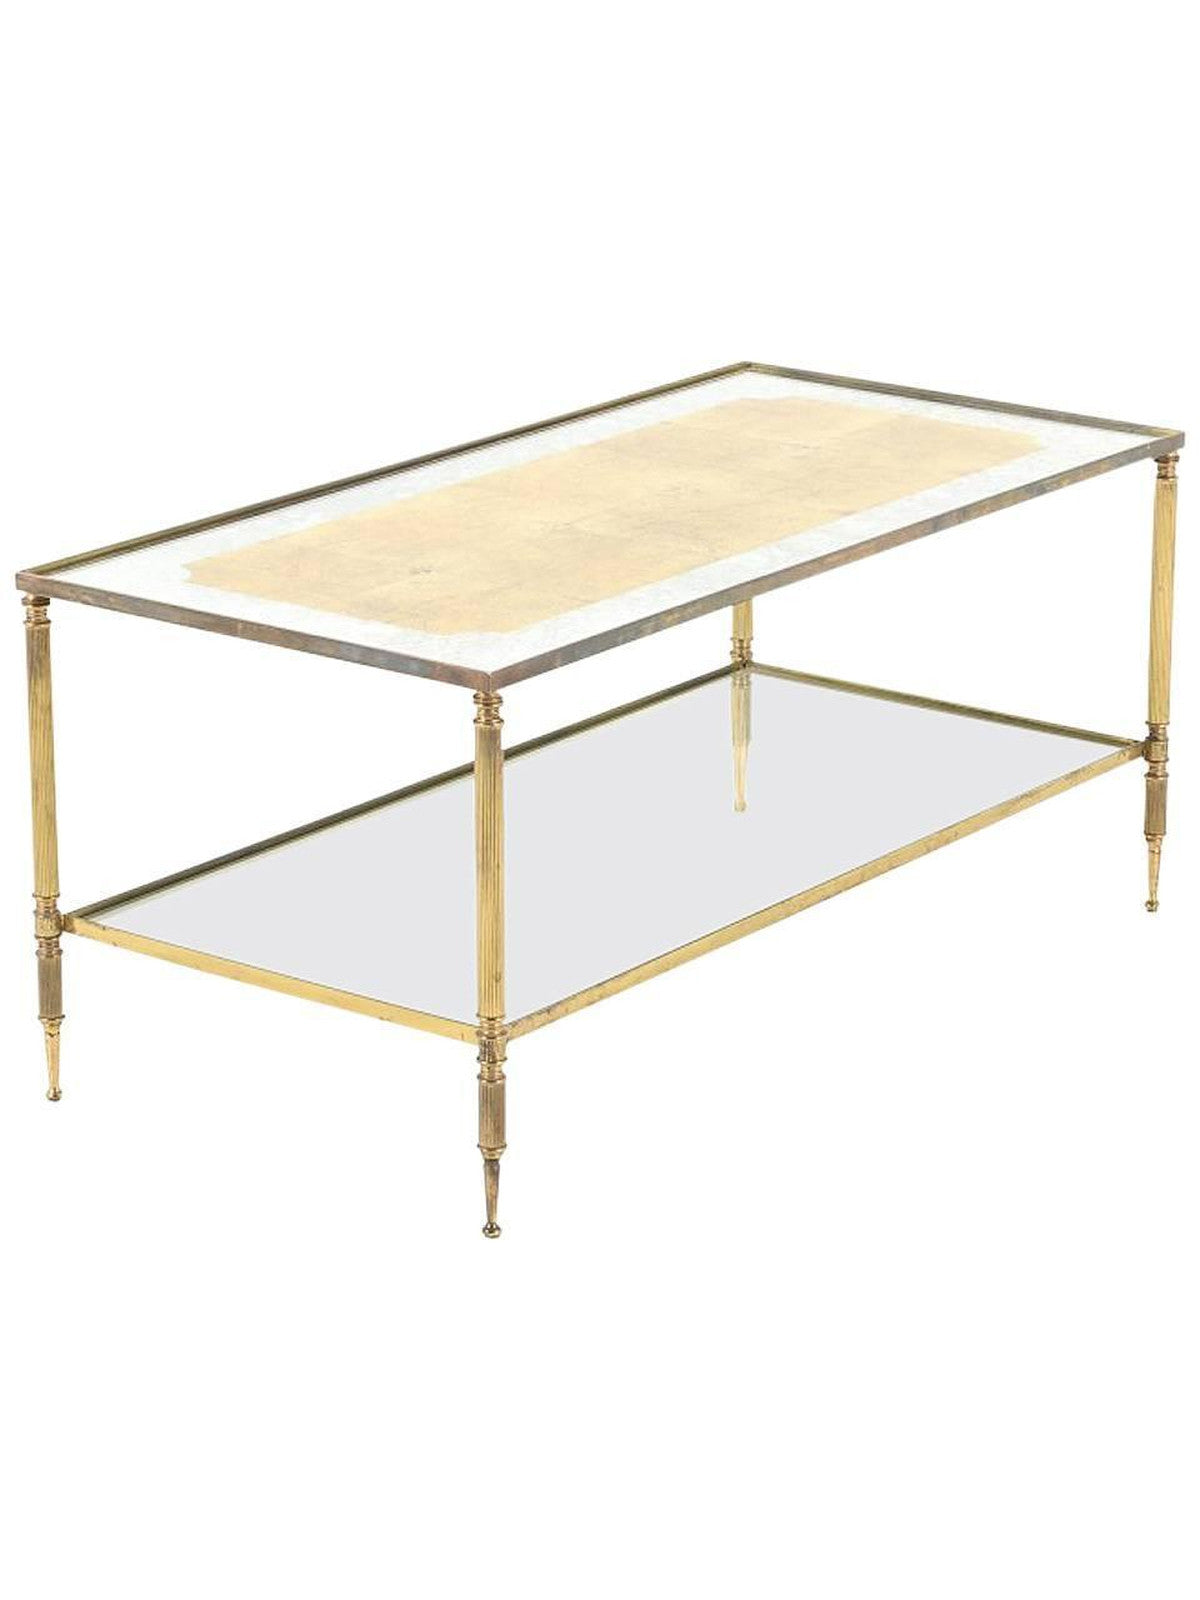 Jansen Coffee Table Vintage Coffee Table In The Style Of Maison Jansen The Edit